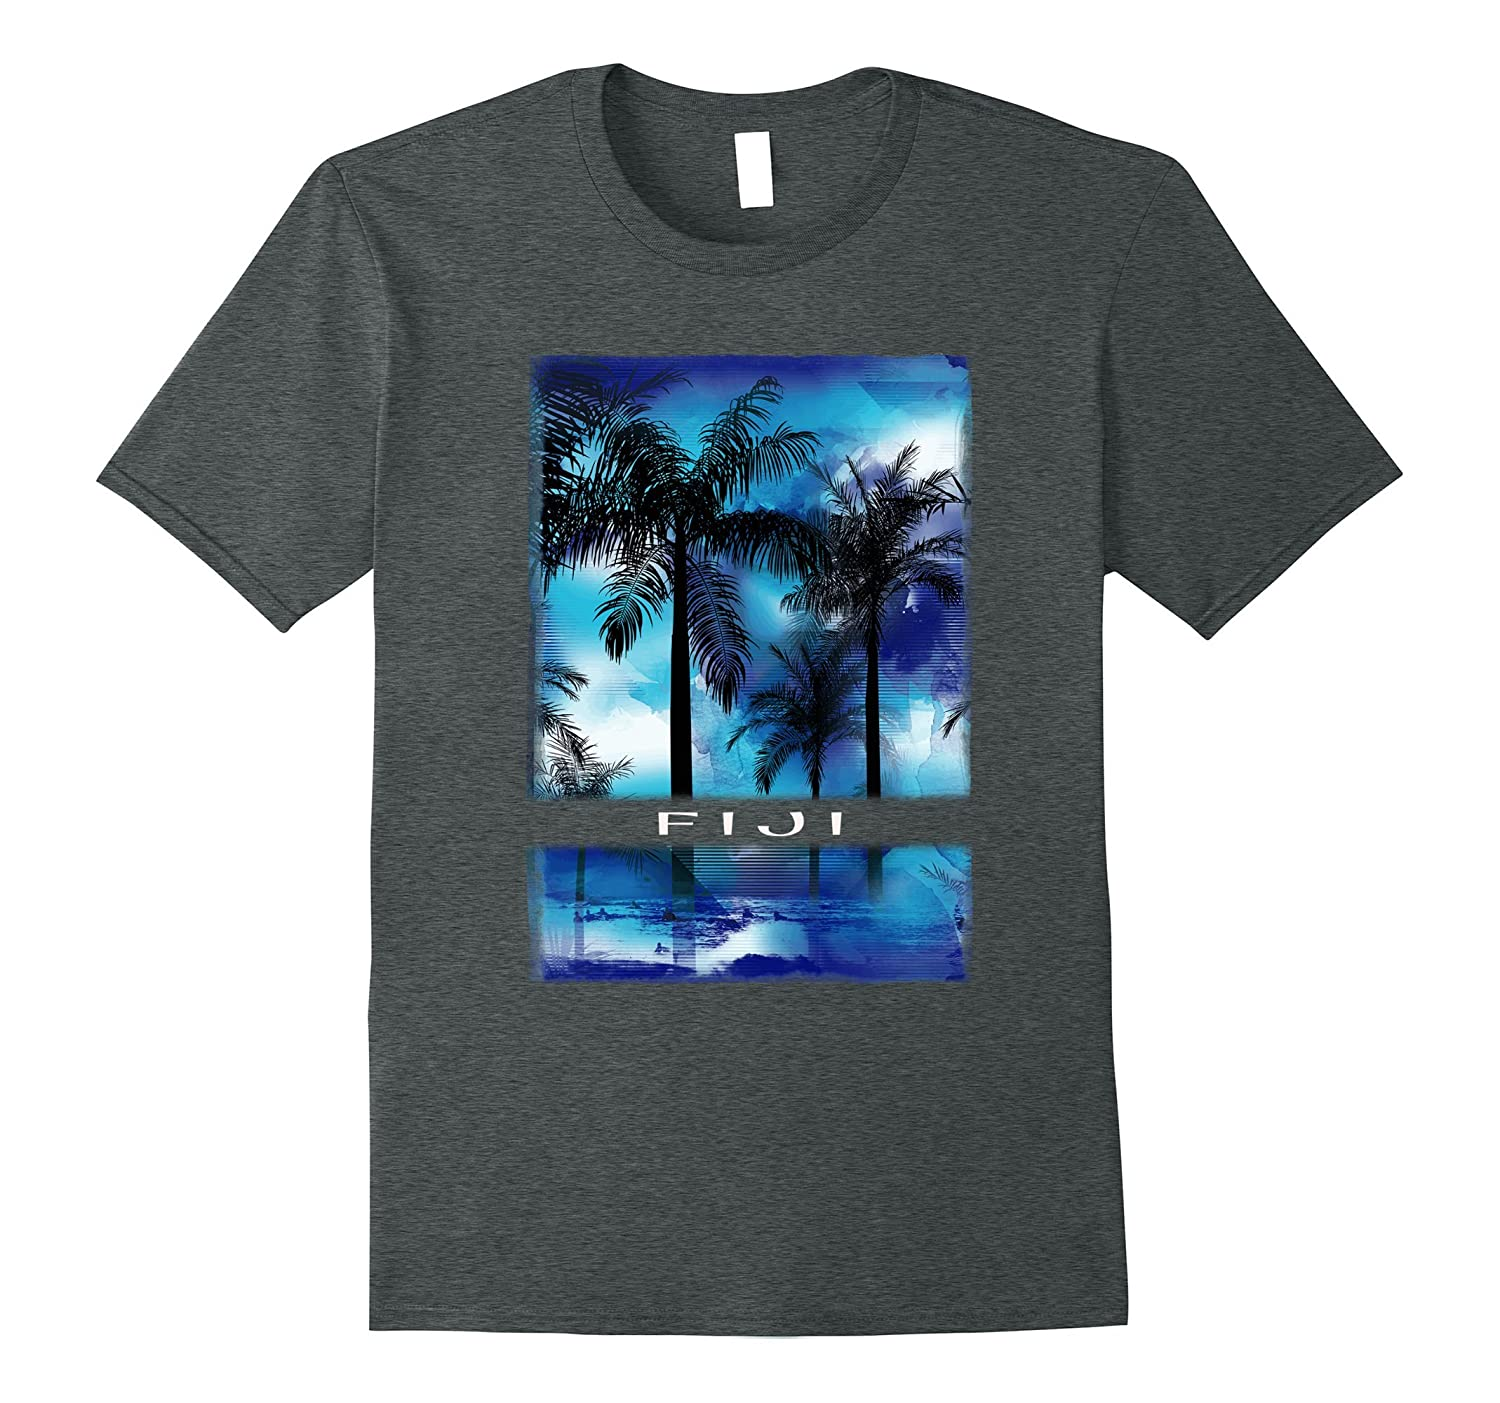 Fiji T Shirt Clothes Adult Teen Kids Apparel Clothing Cool-ANZ